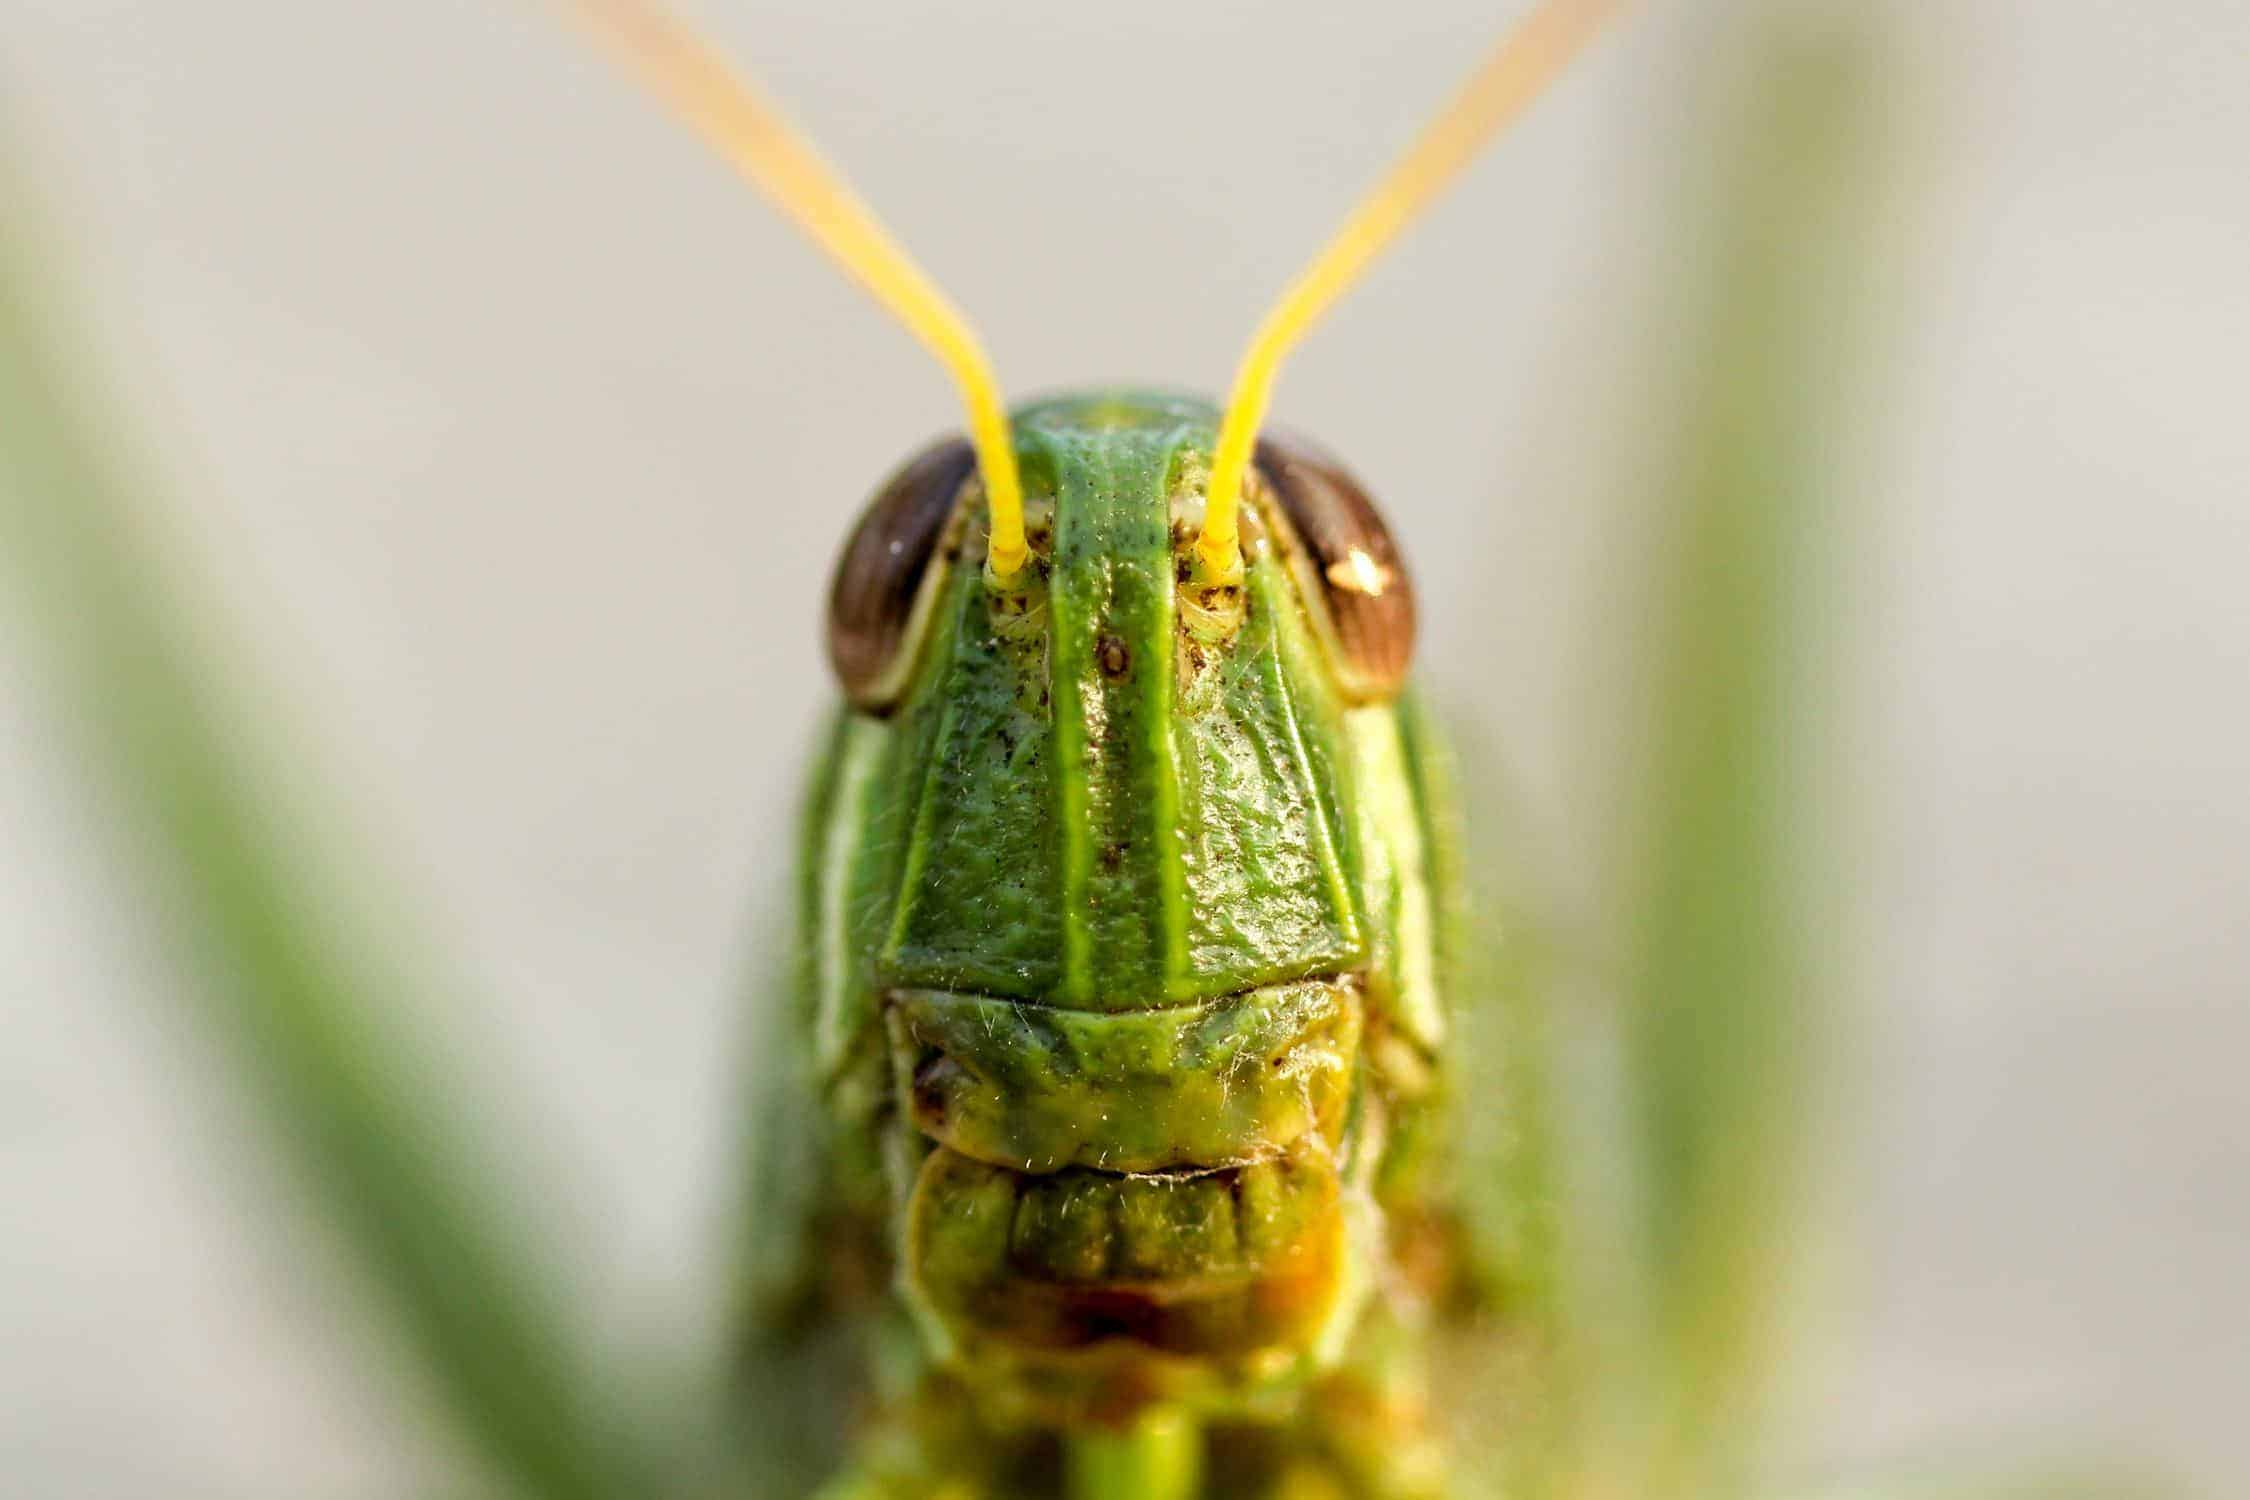 Close up shot of a crickets face